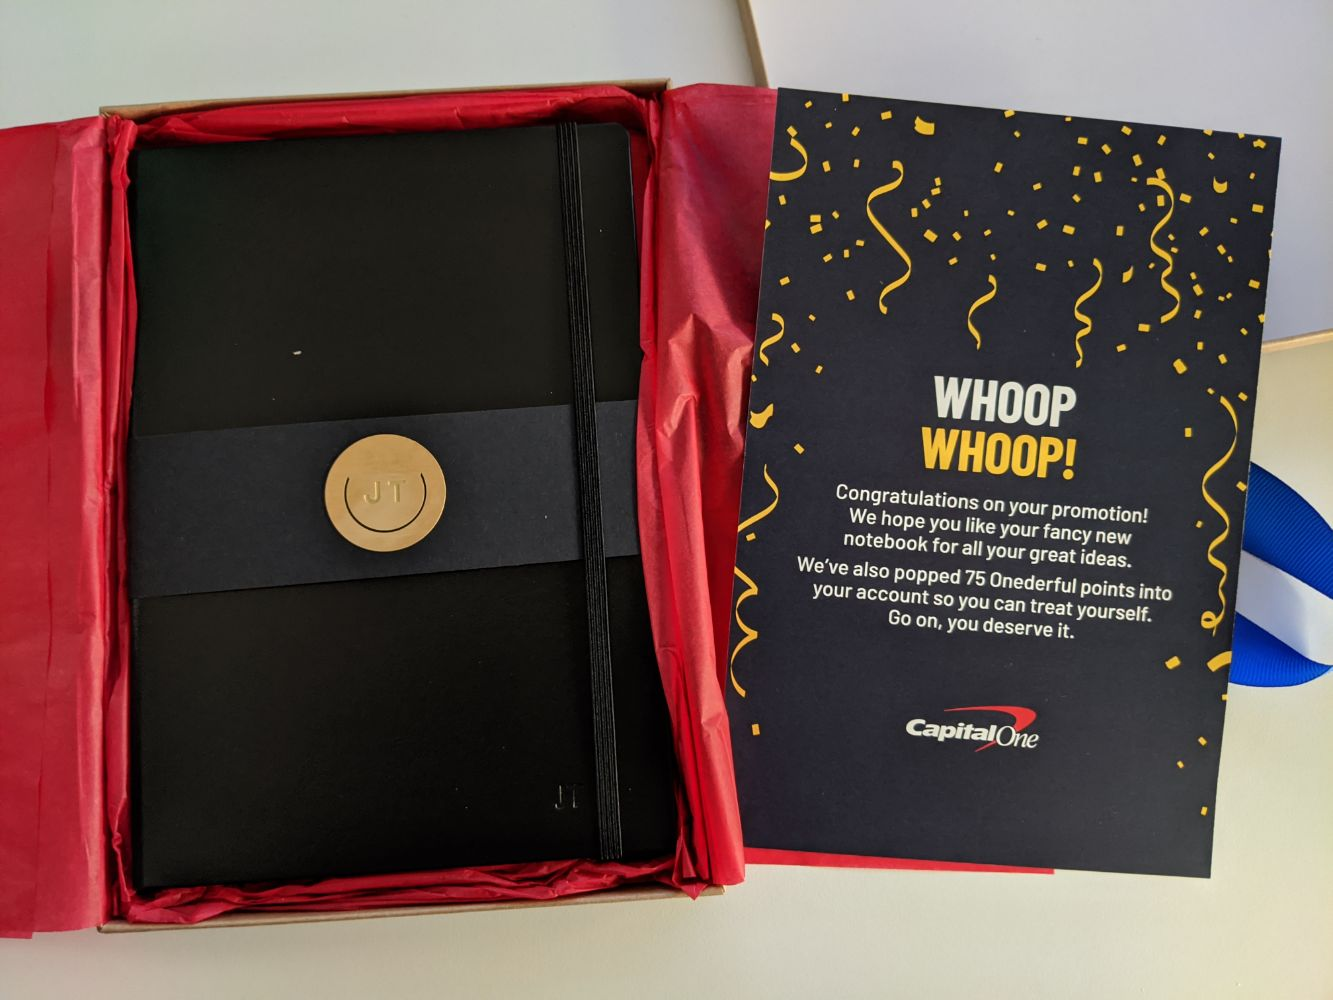 The inside of the parcel - on the right, a card with a congratulatory message inside it. On the left, a black notebook, embossed with Jamie's initials